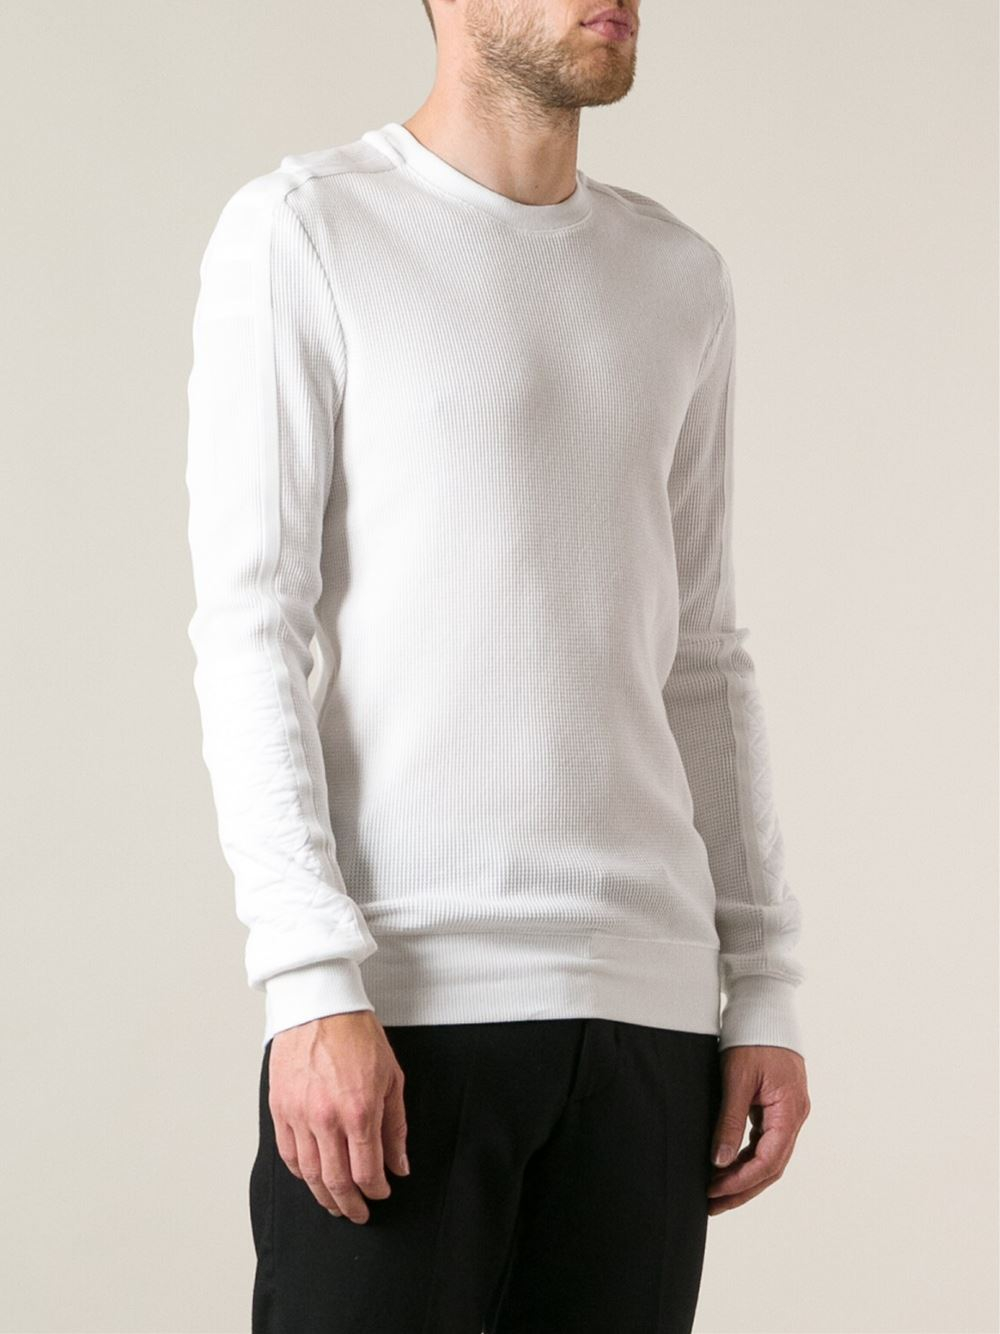 Helmut lang Waffle Weave Sweater in White for Men | Lyst